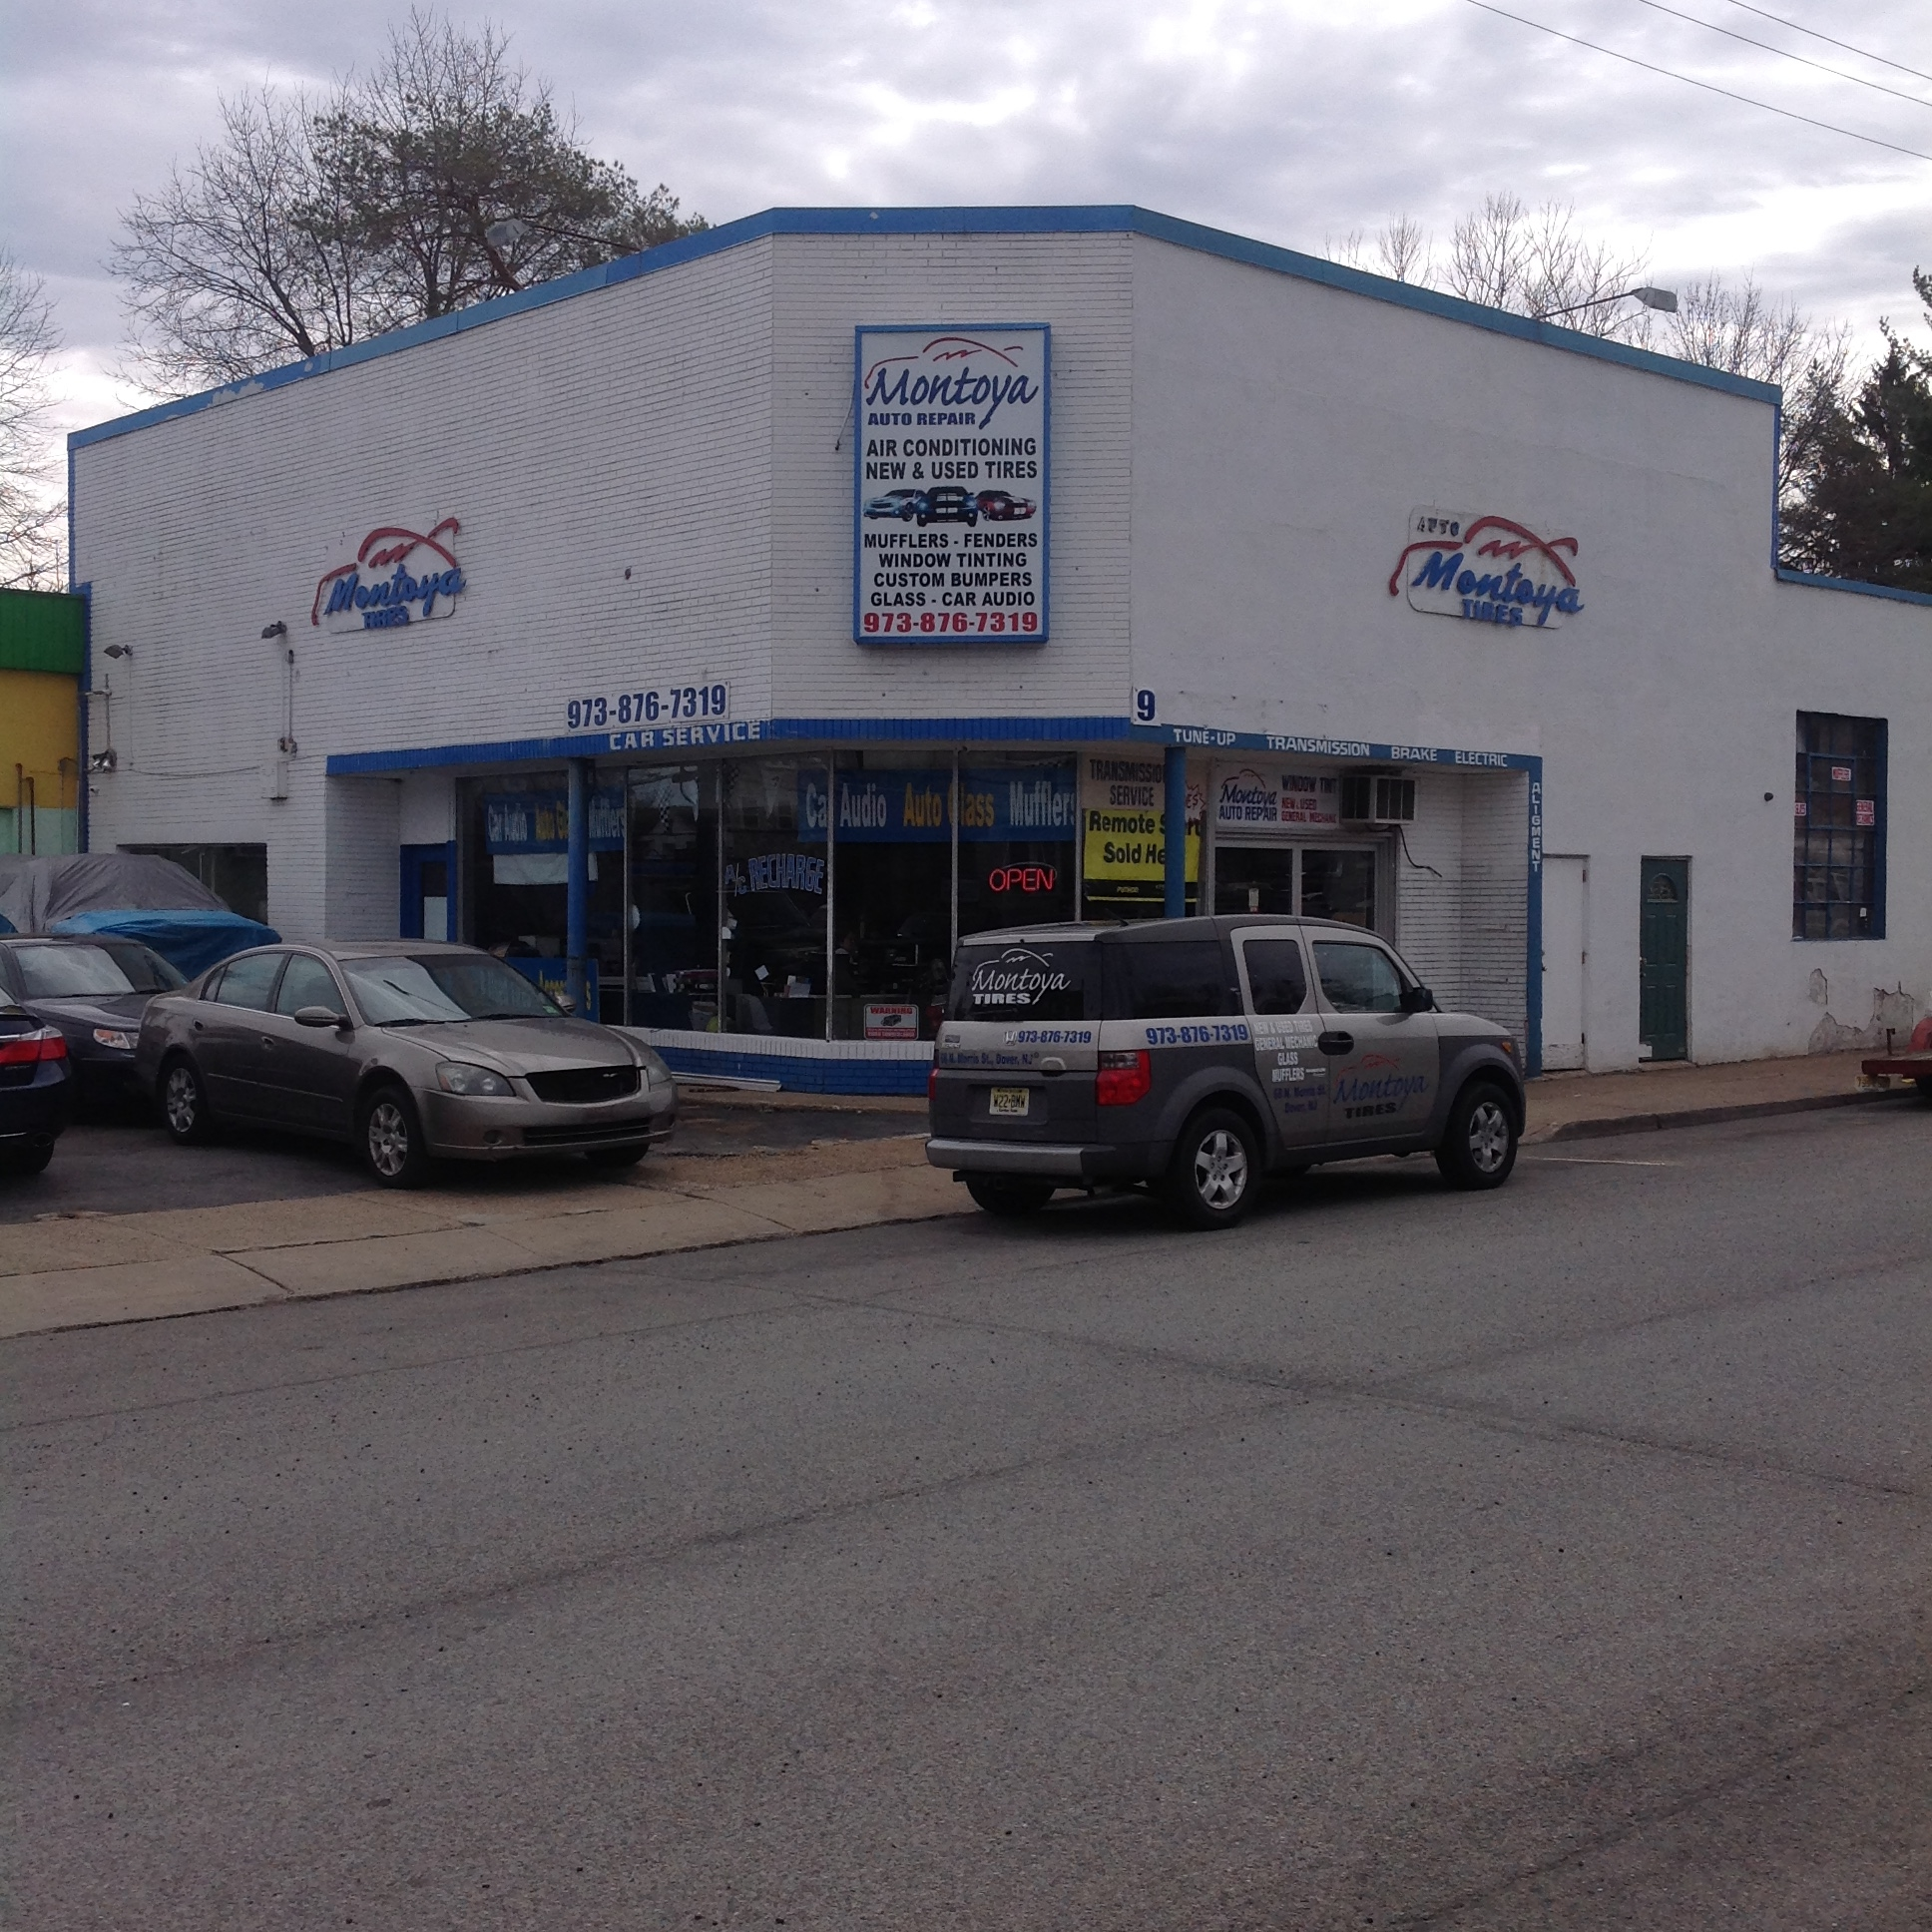 Montoya Auto Service & Tires In Dover, NJ